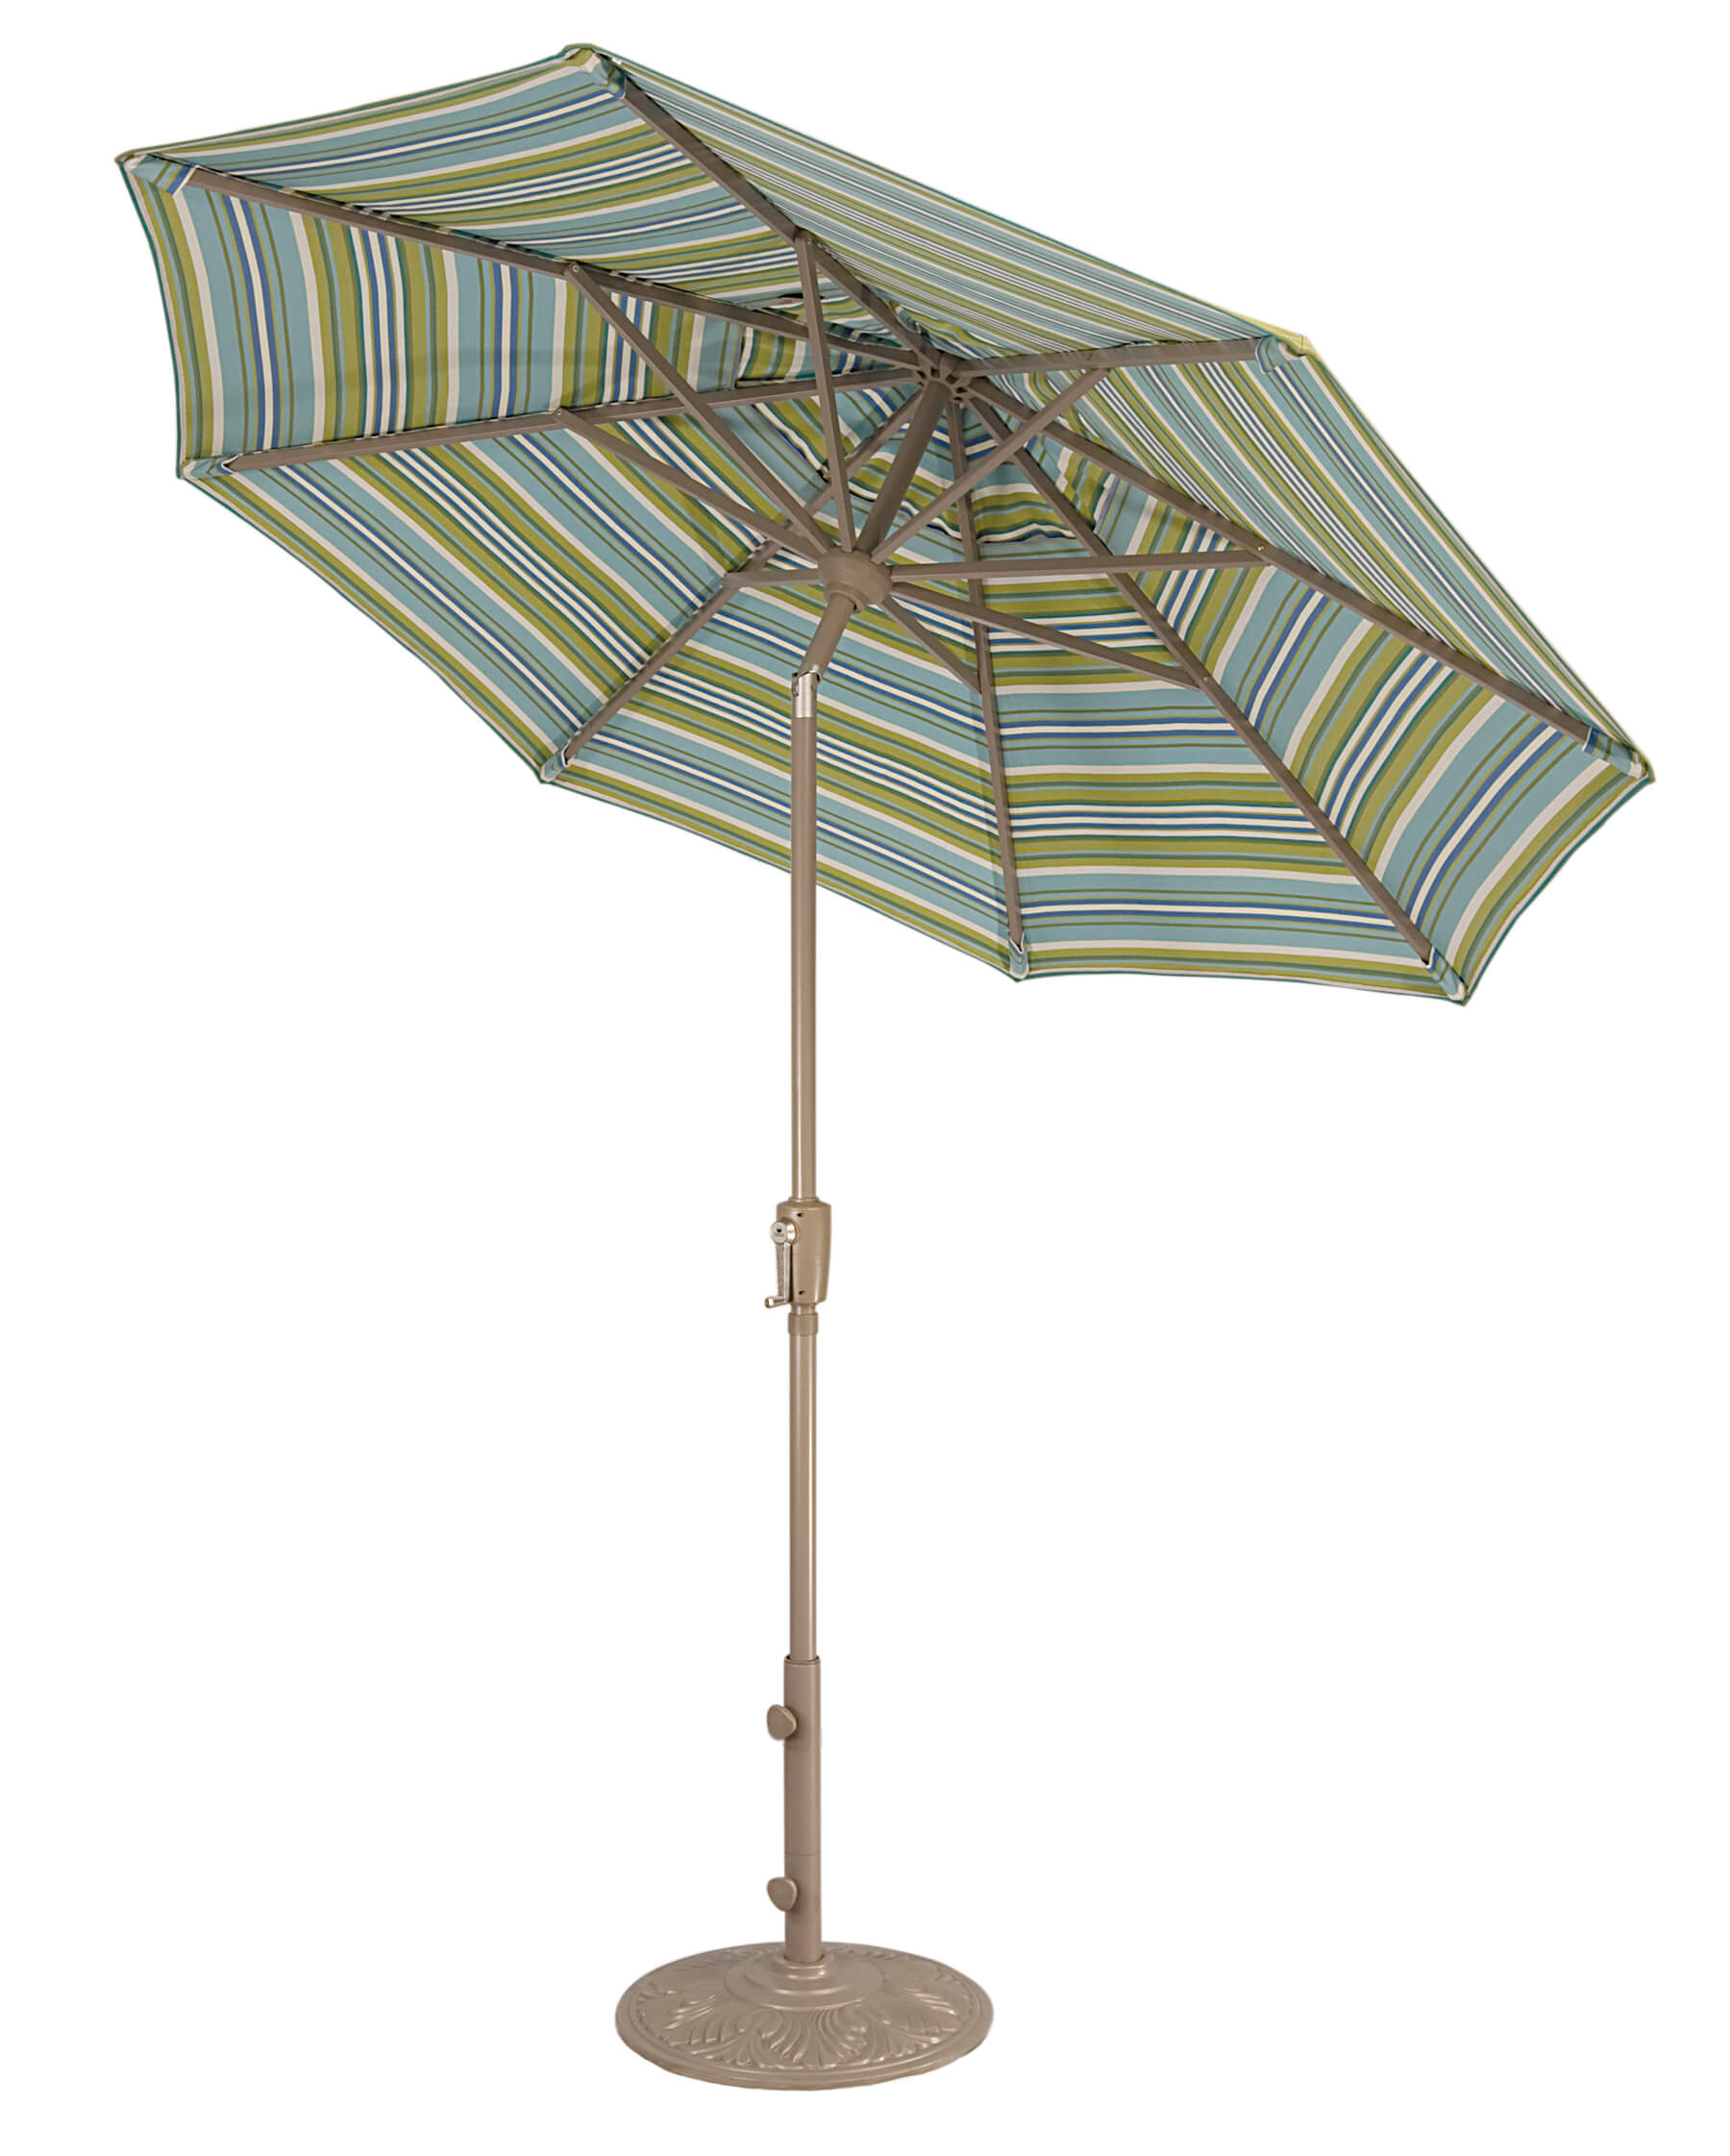 Outdoor Shade Umbrella Made In The Shade Patio Umbrellas By Treasure Garden